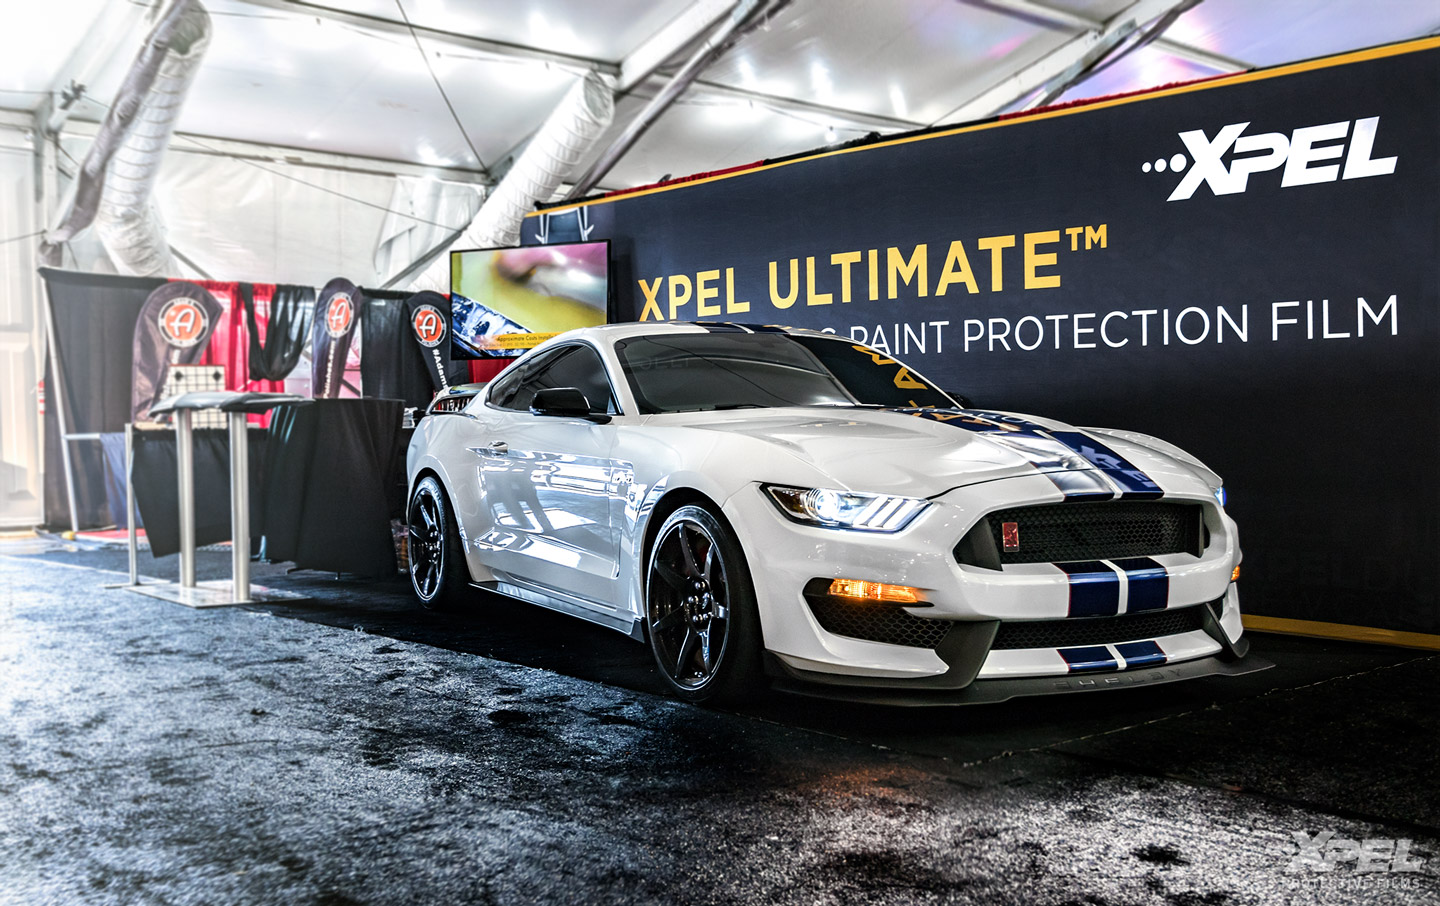 Barrett-Jackson-North-East-Mustang-GT350-R-XPEL-clear-bra-booth